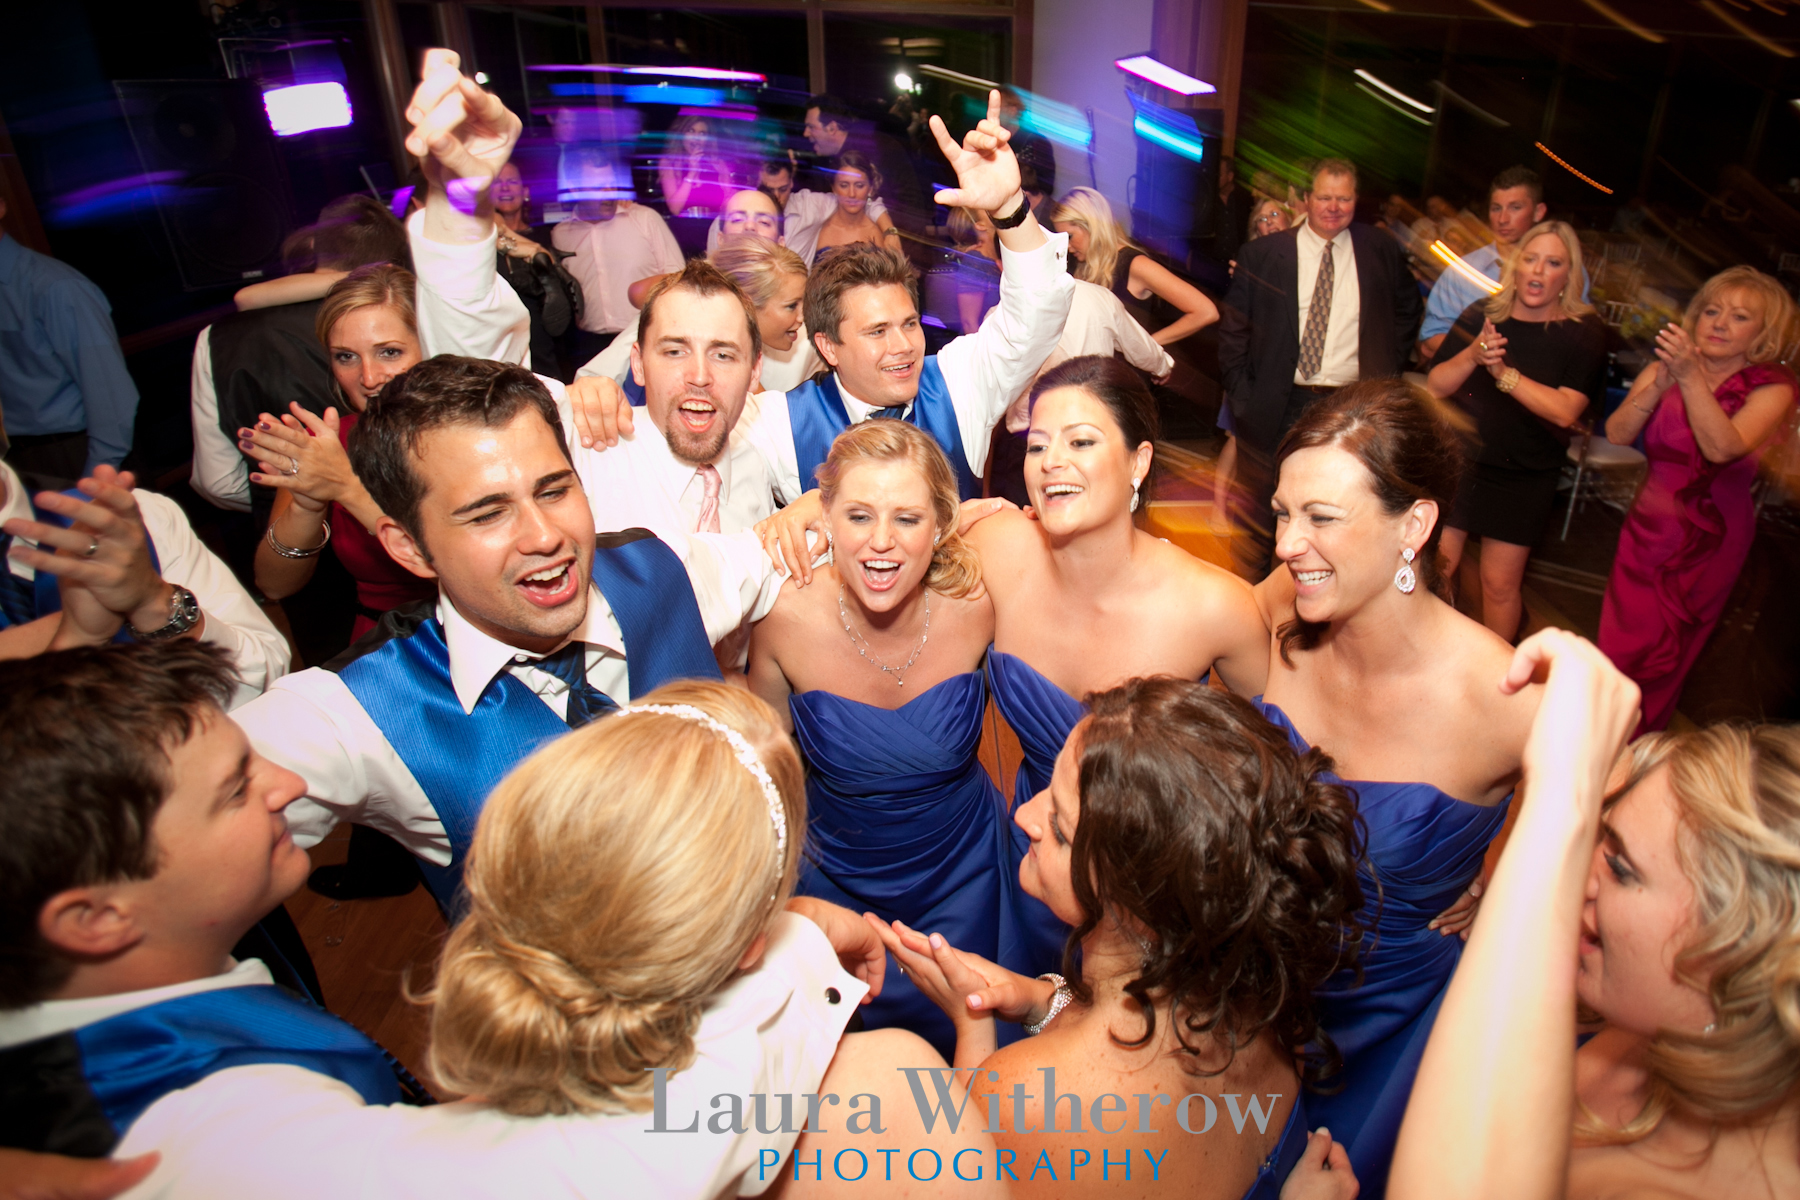 hyatt-lodge-wedding-reception.jpg